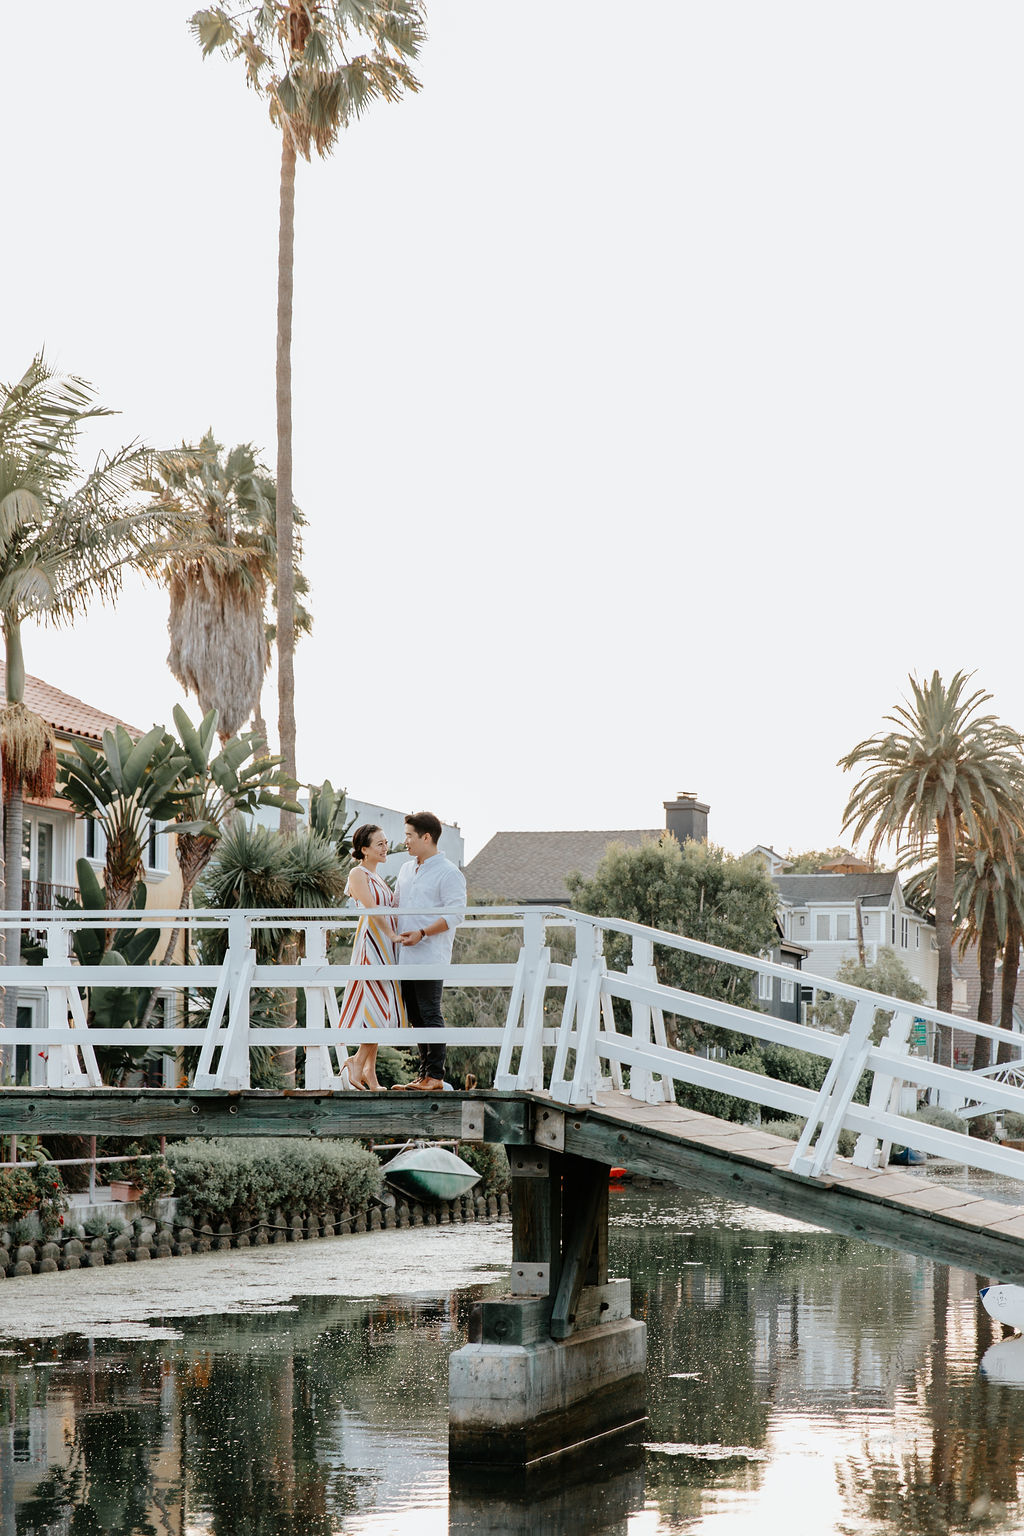 Venice Canals Engagement Photography 15 Los Angeles Orange County Wedding Photographer Joy Theory Co